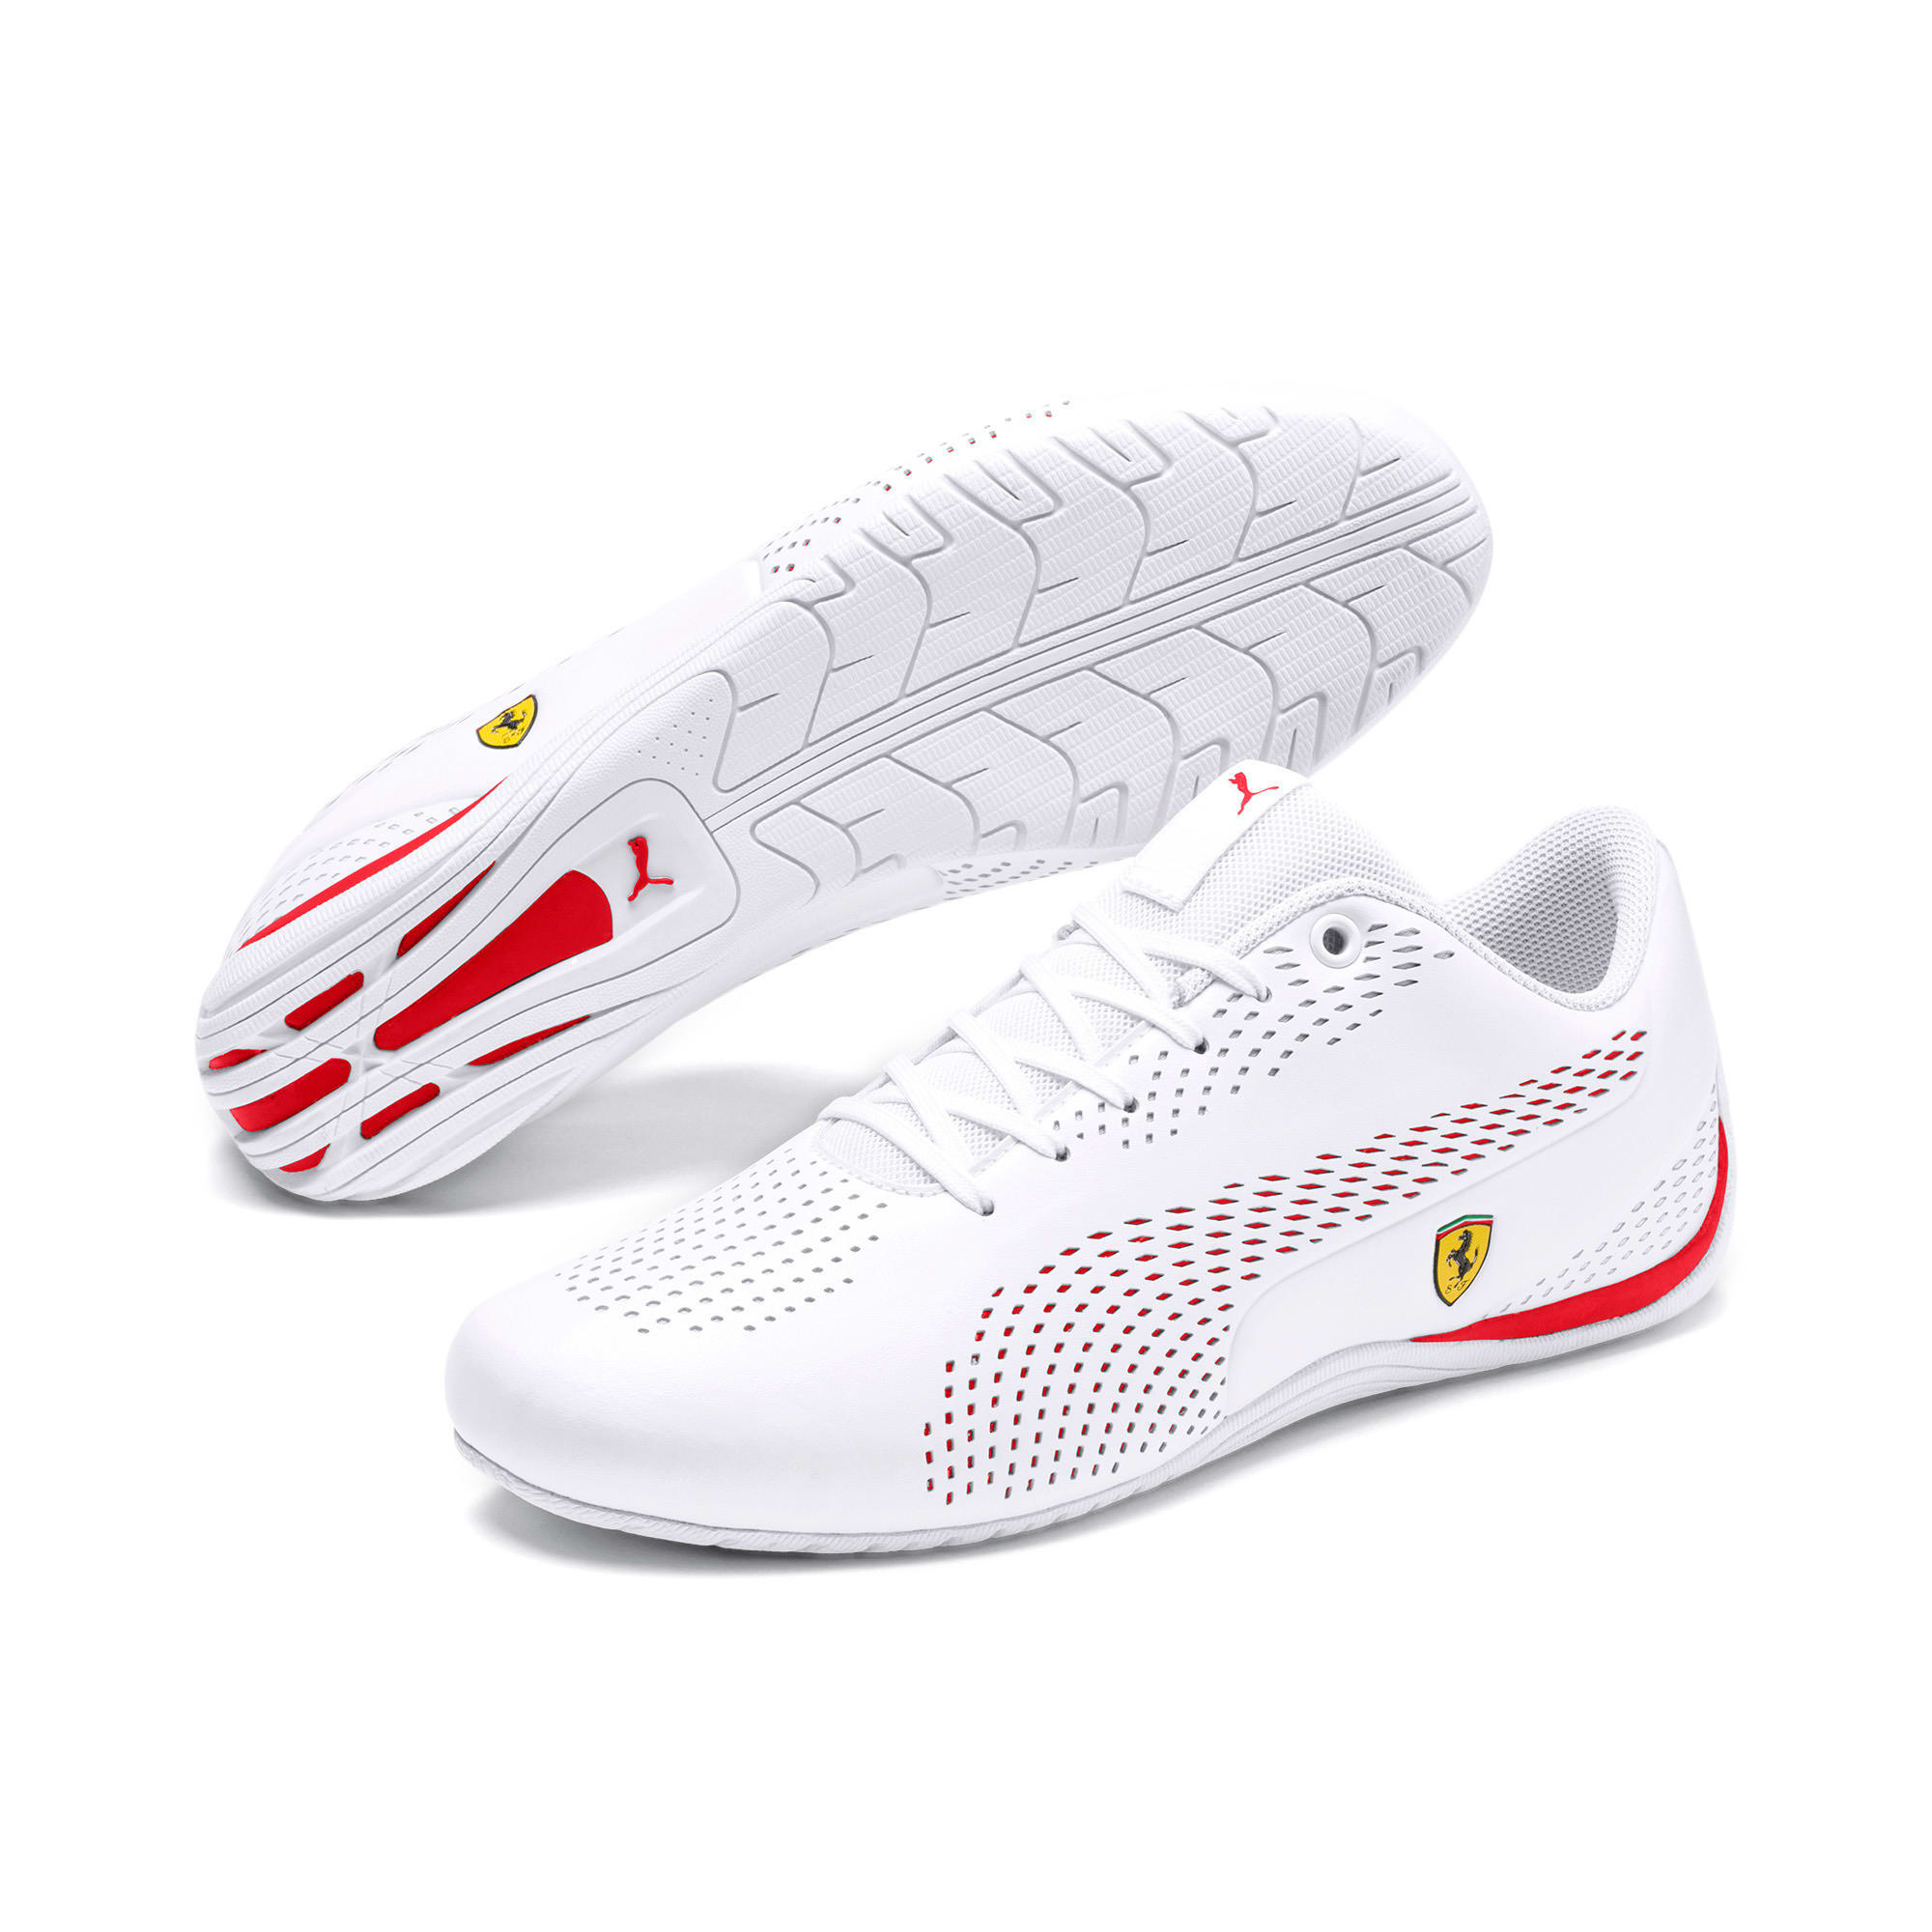 7abfff12 Scuderia Ferrari Drift Cat 5 Ultra II Men's Shoes